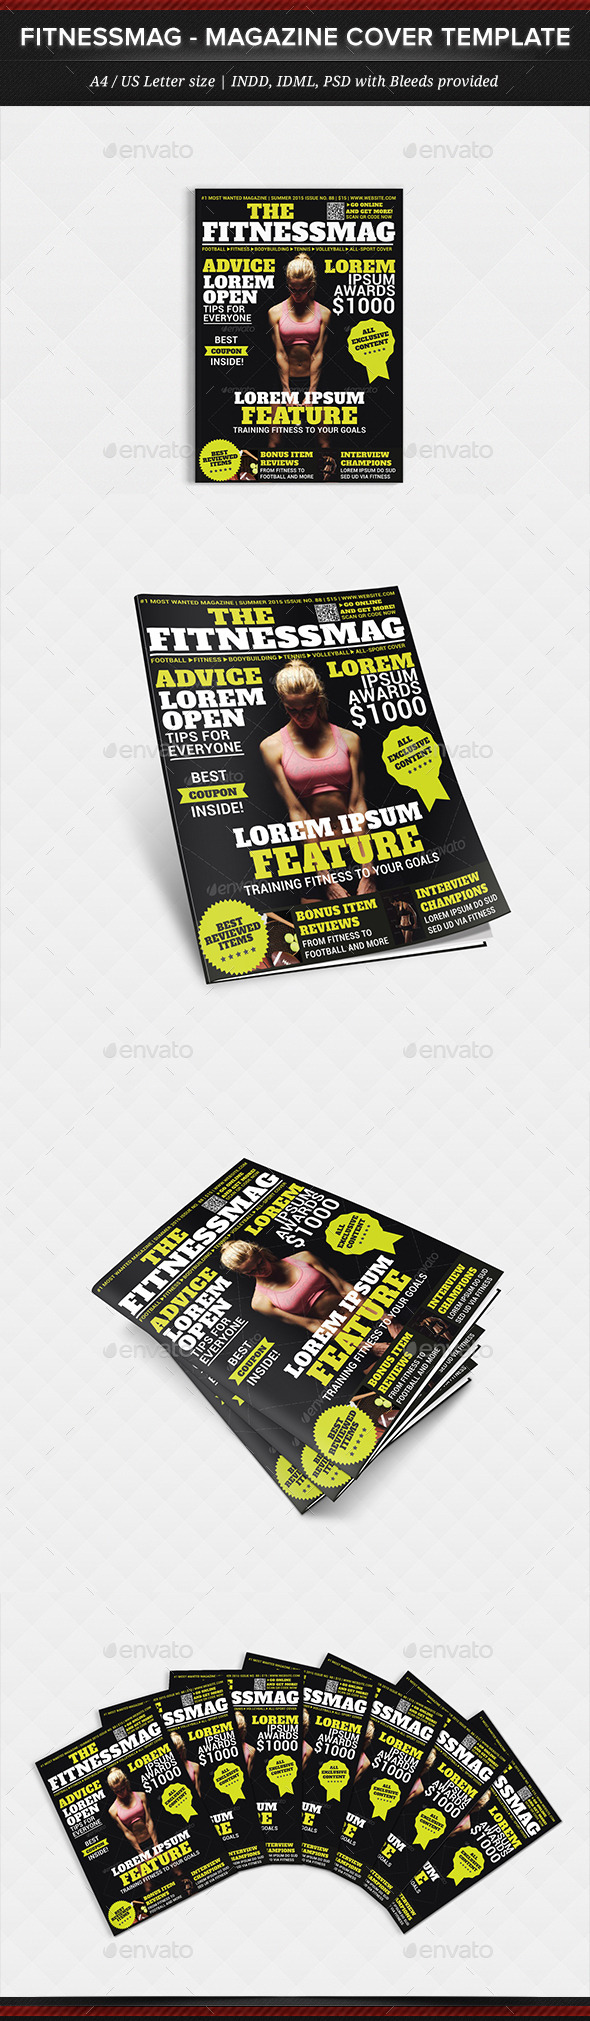 GraphicRiver FitnessMag Multipurpose Magazine Cover Template 11977412